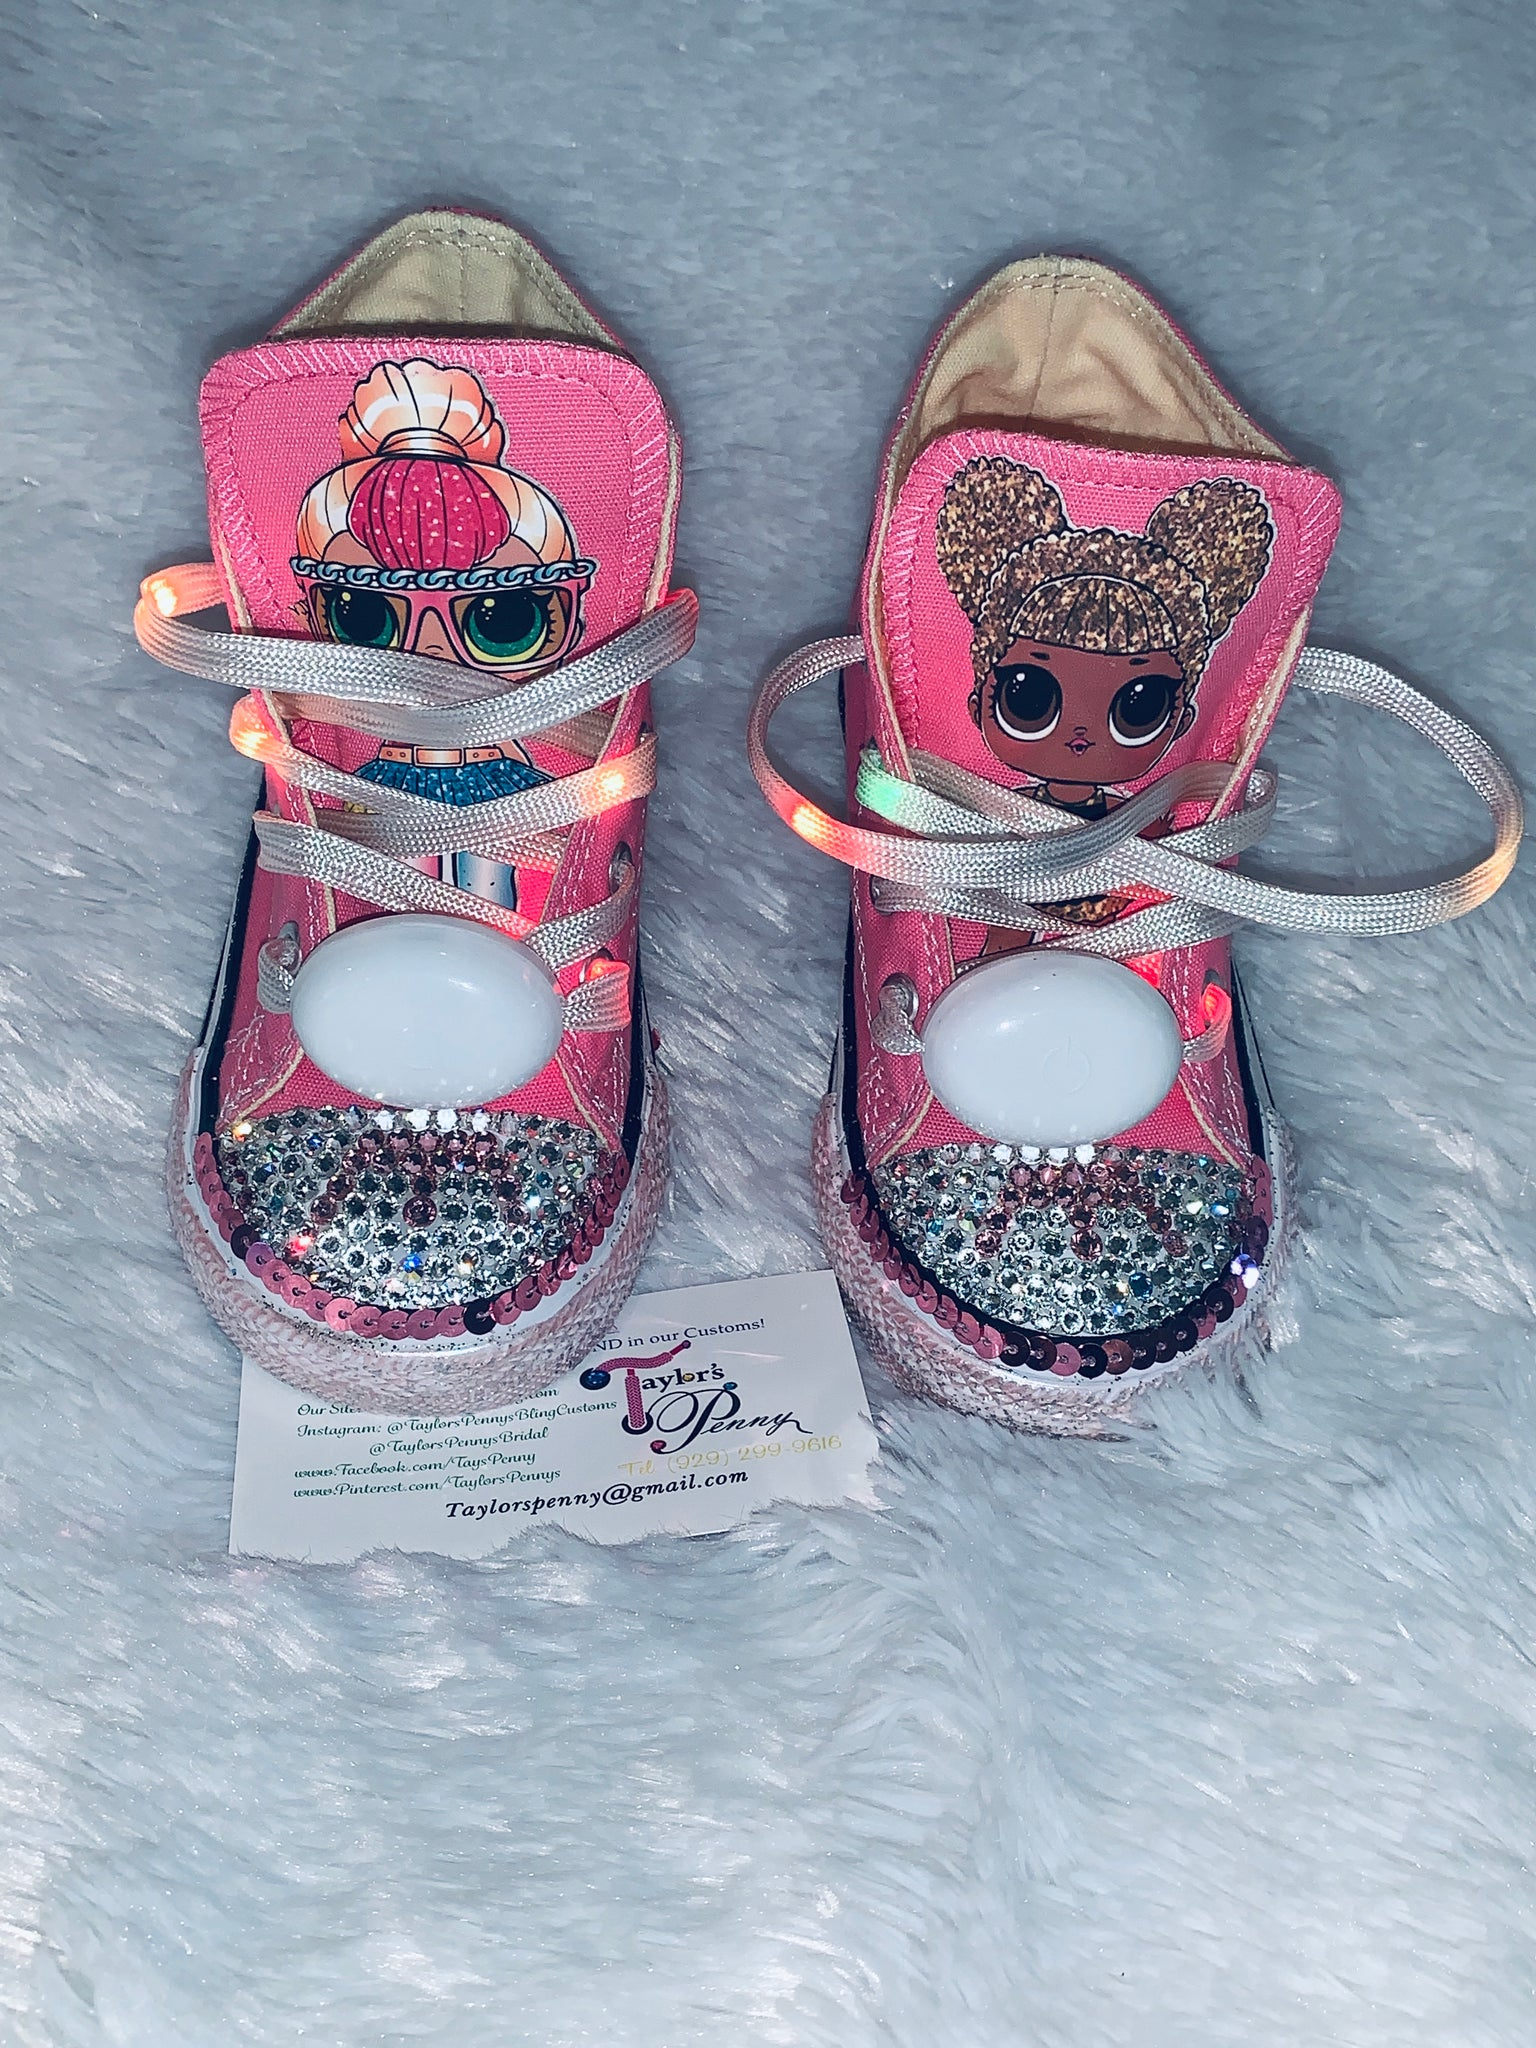 Girls Bling Converse (LOL Surprise) Sneakers – Taylors Penny